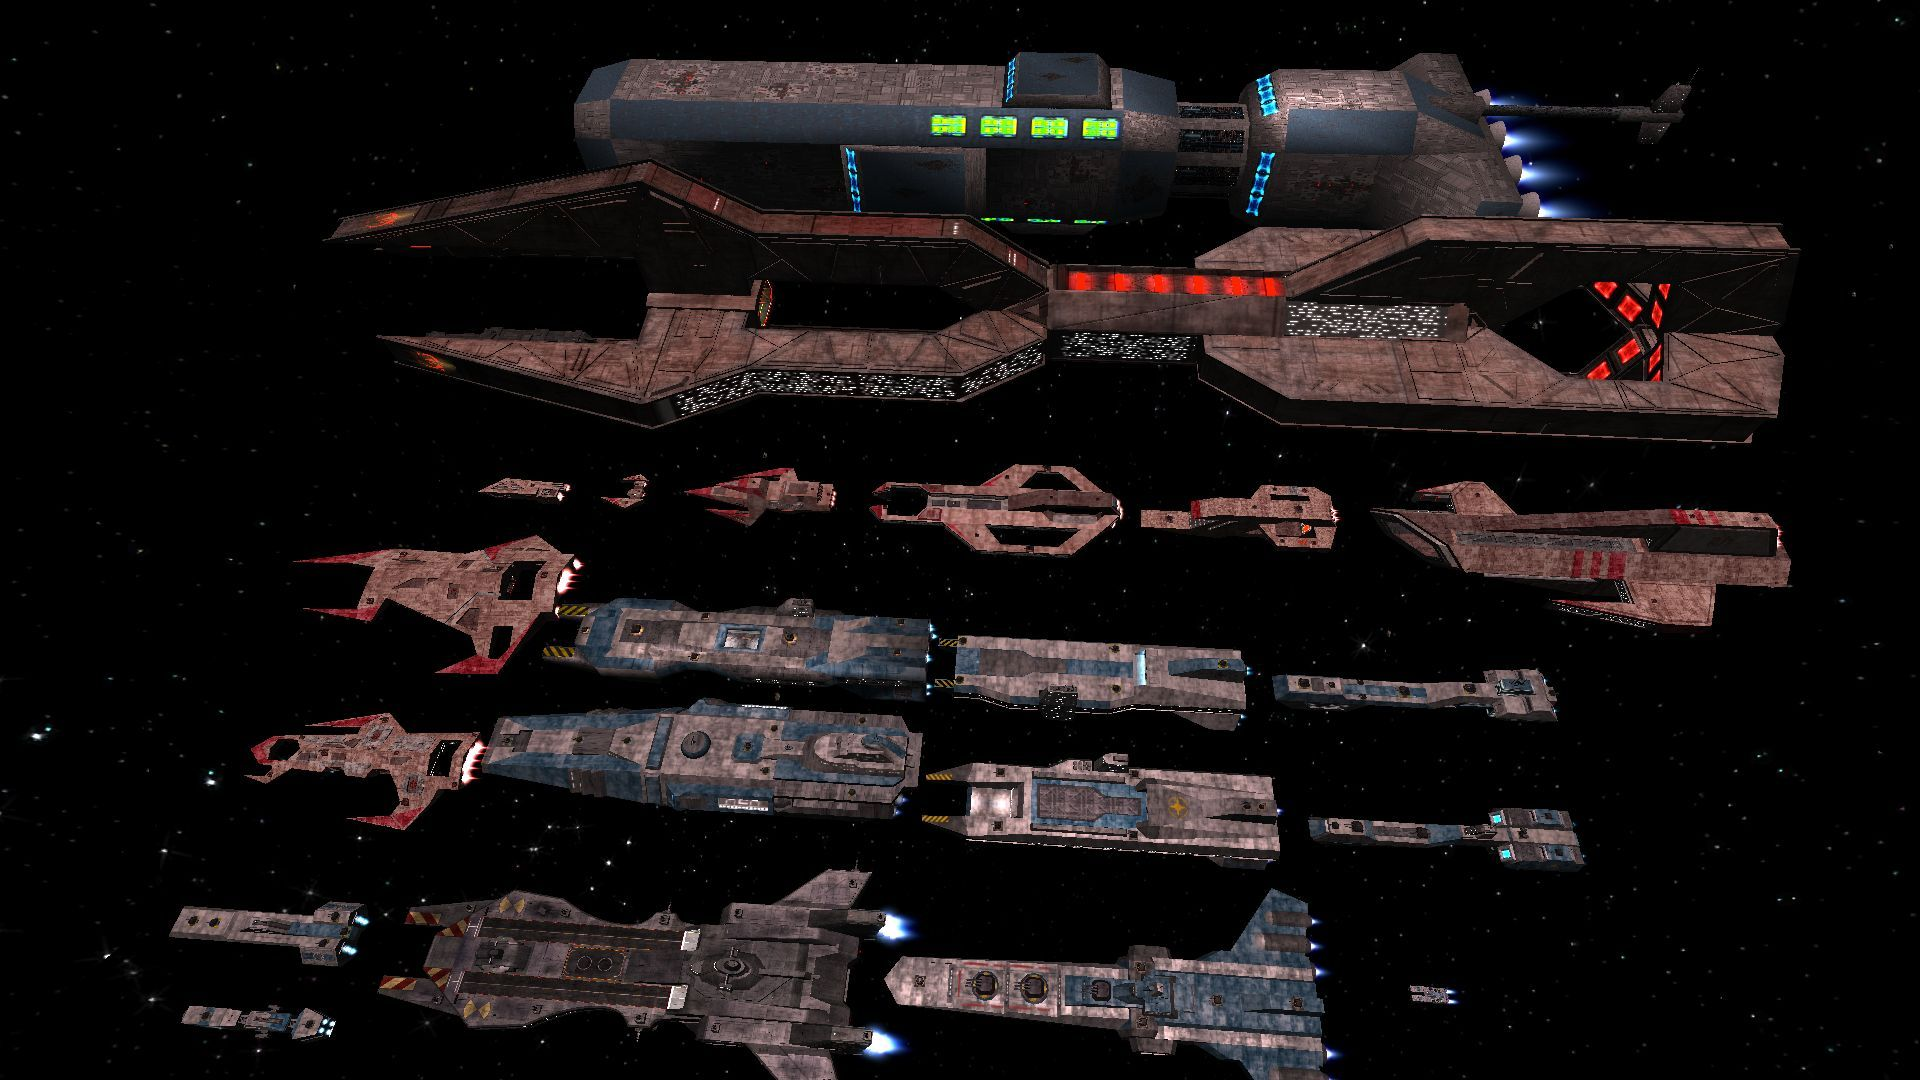 Wing commander prophecy ships google search wing for Wing commander prophecy